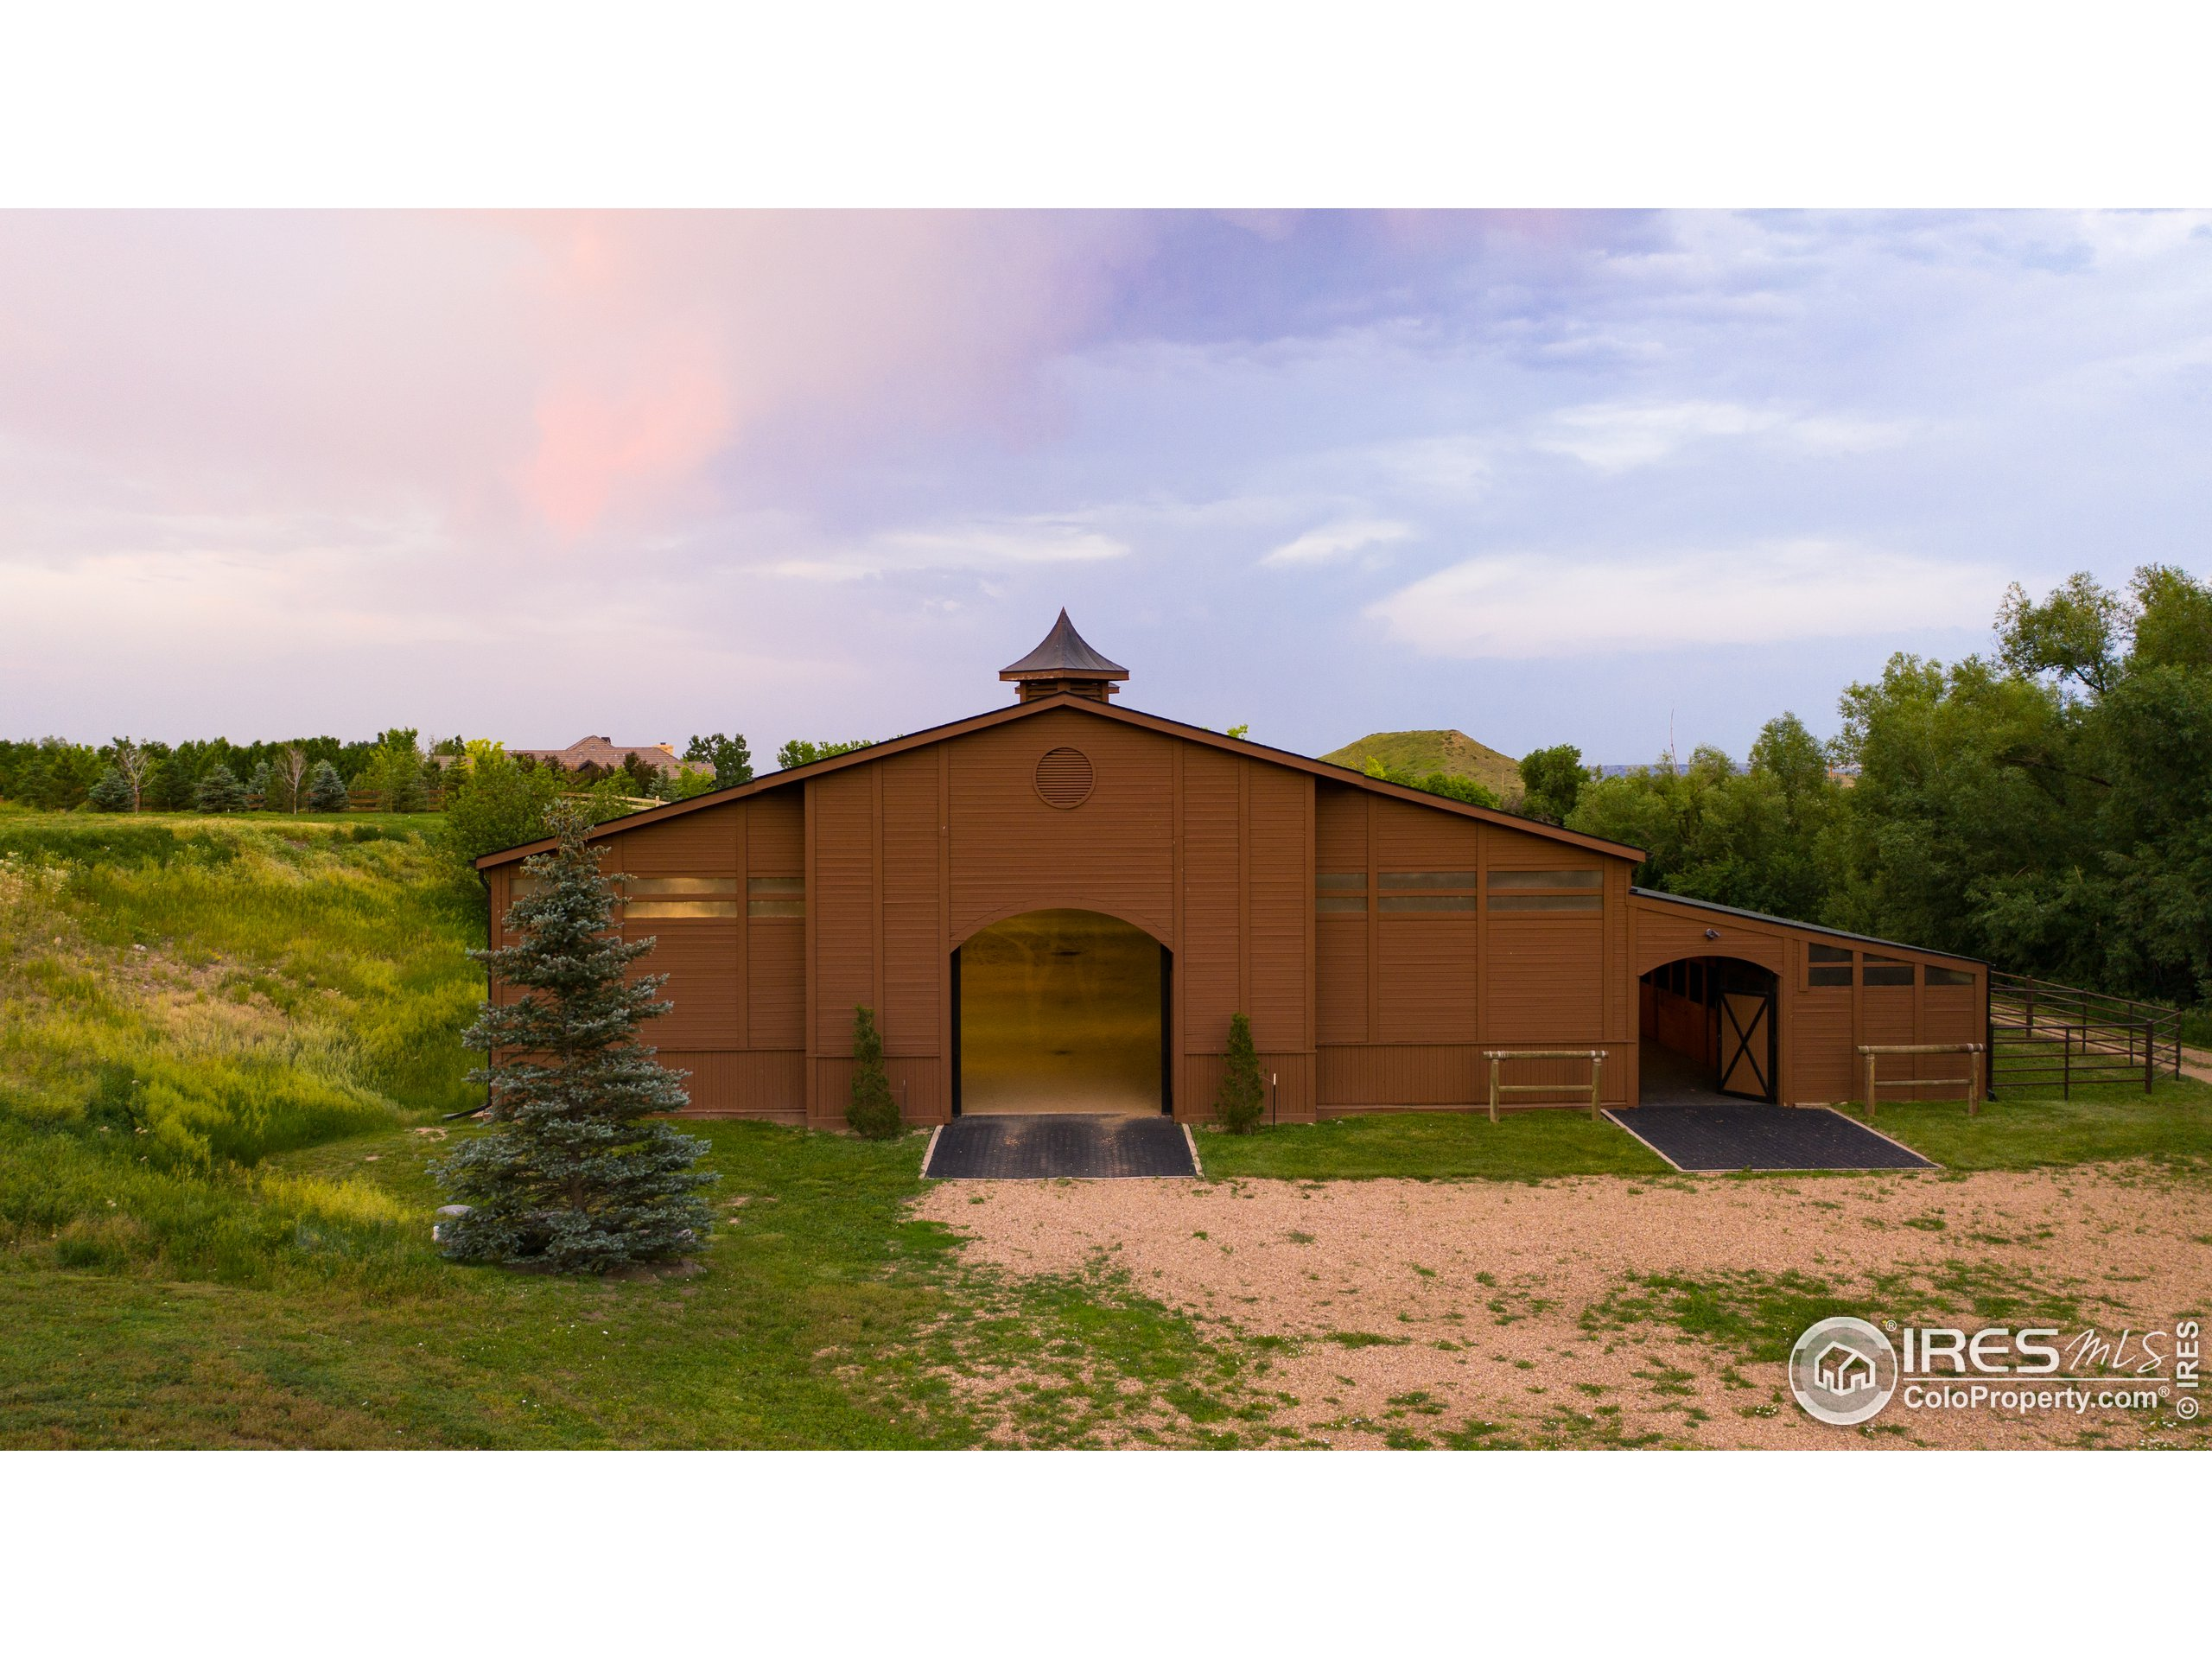 State of the Art Equestrian Center